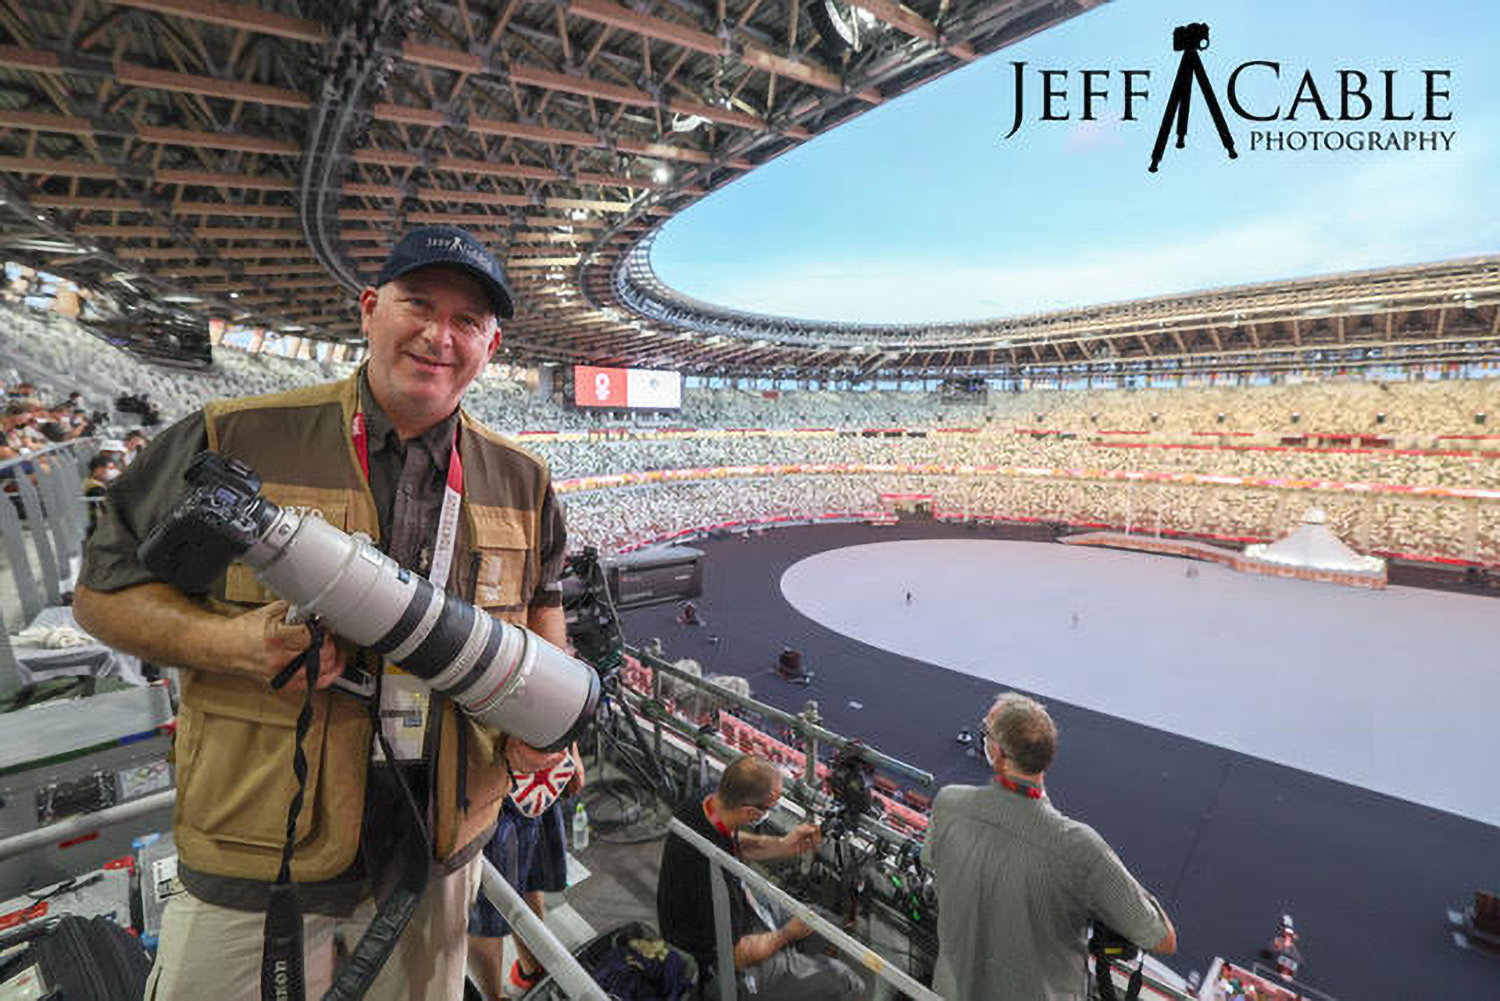 Photo of Jeff Cable with R3